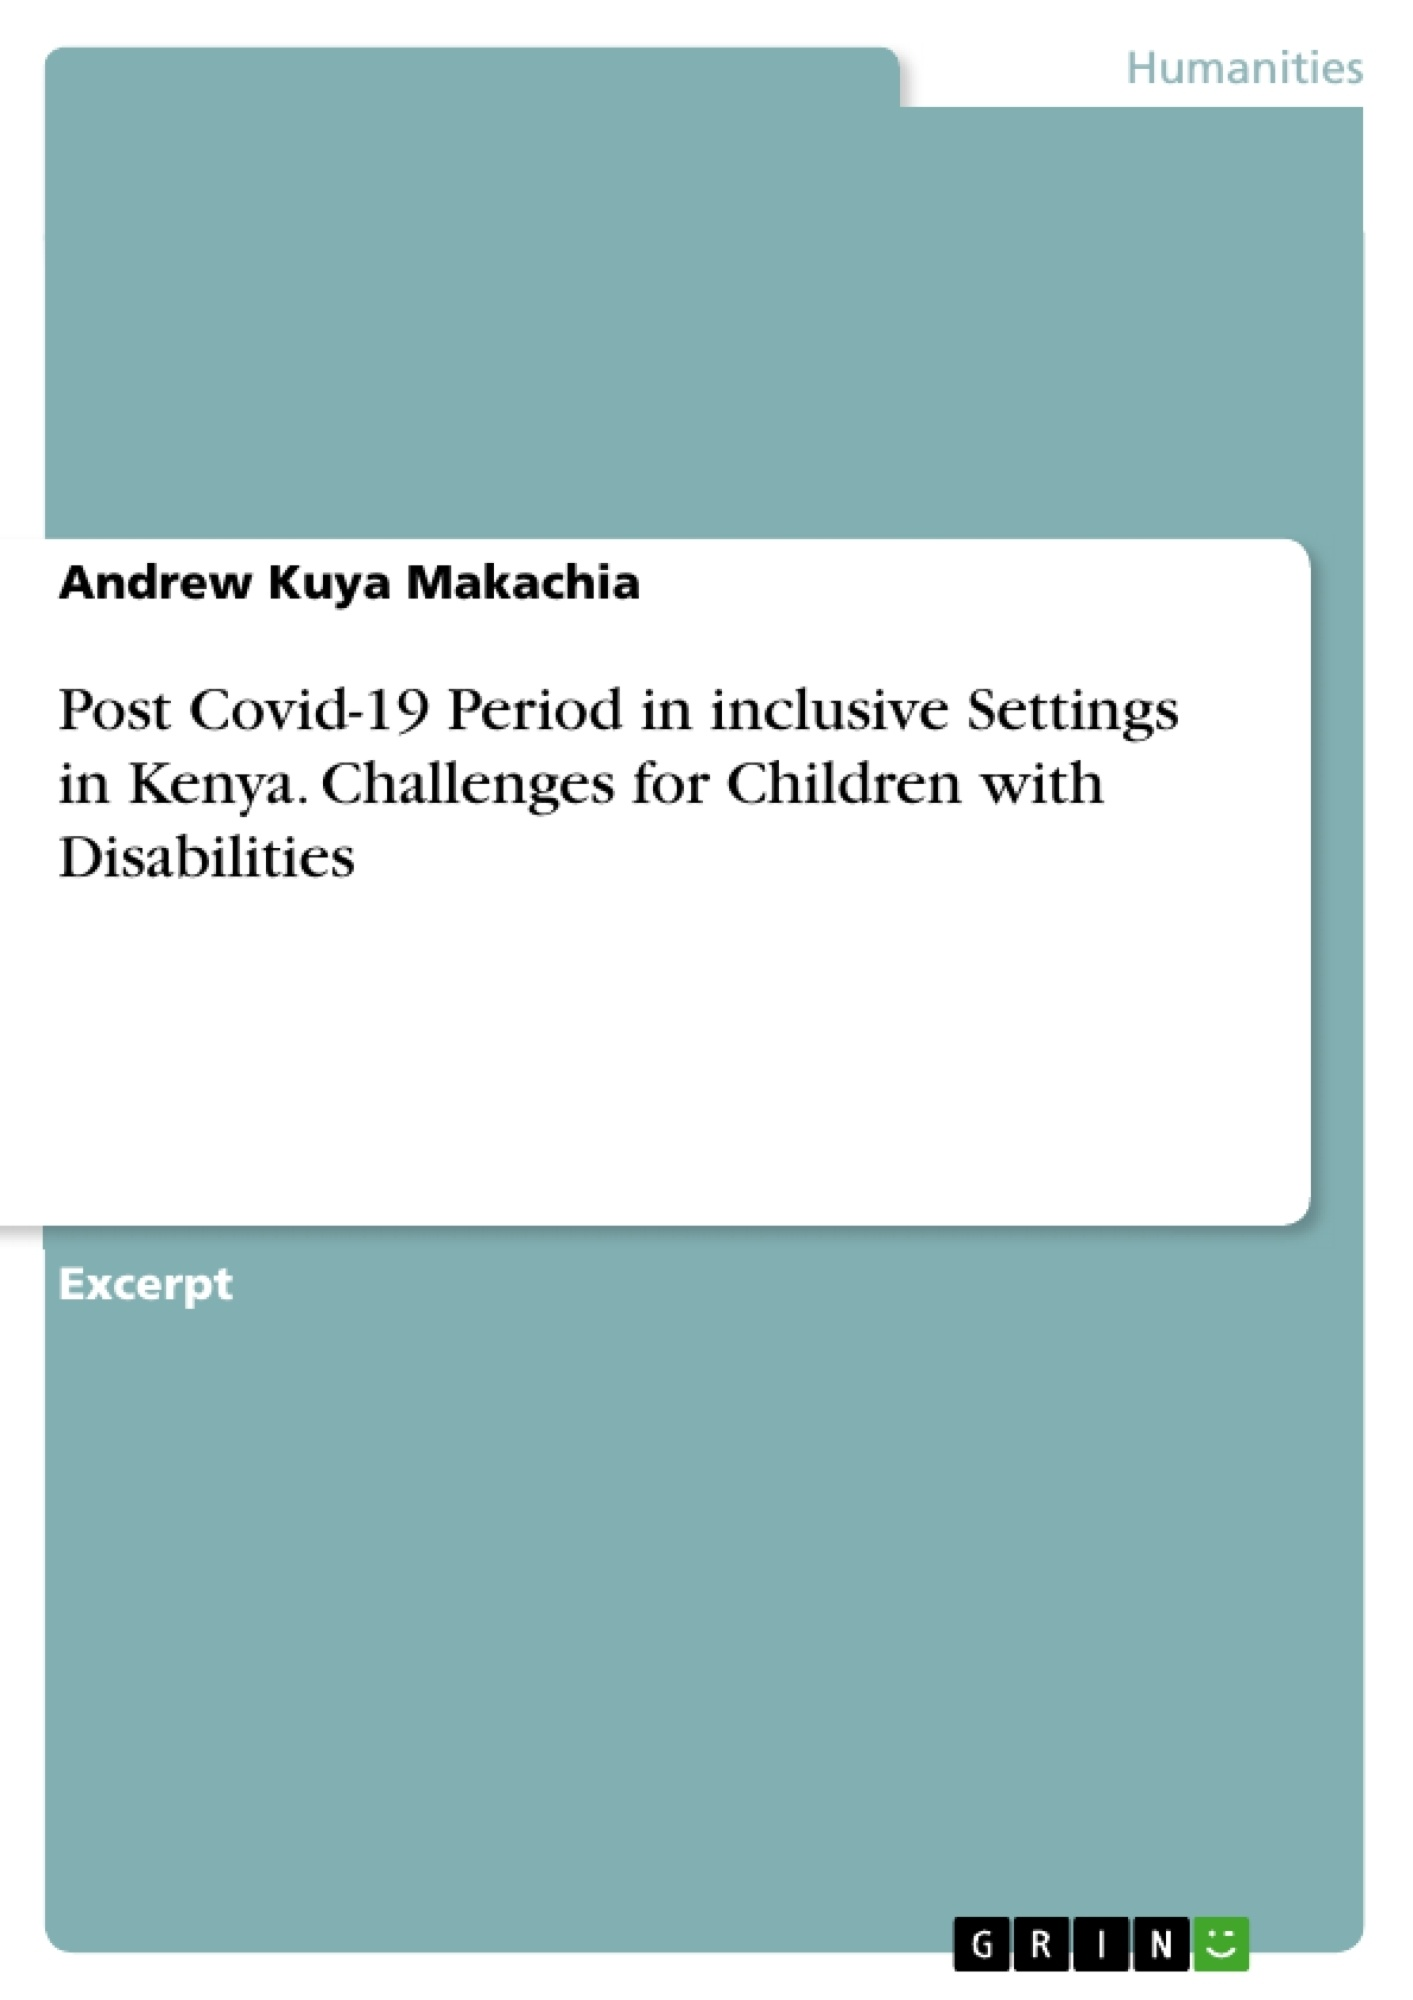 Title: Post Covid-19 Period in inclusive Settings in Kenya. Challenges for Children with Disabilities